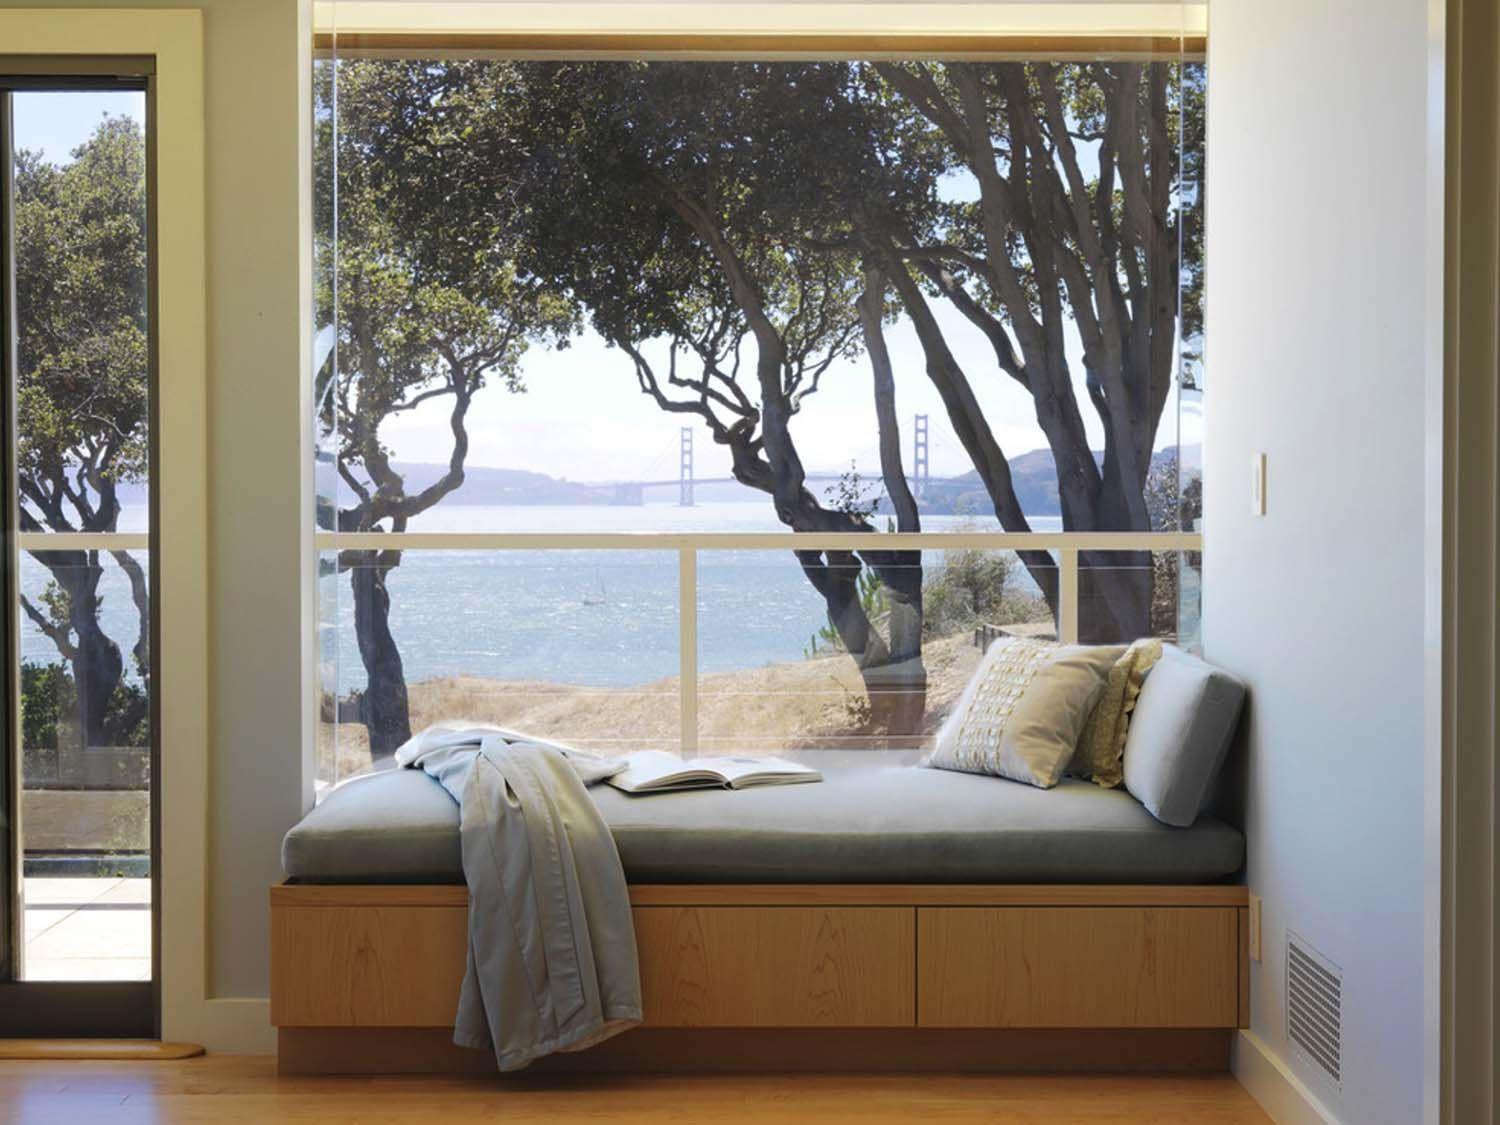 44 Window Nooks Framing Spectacular Views Window Seat Design Home Decor Bedroom My Ideal Home